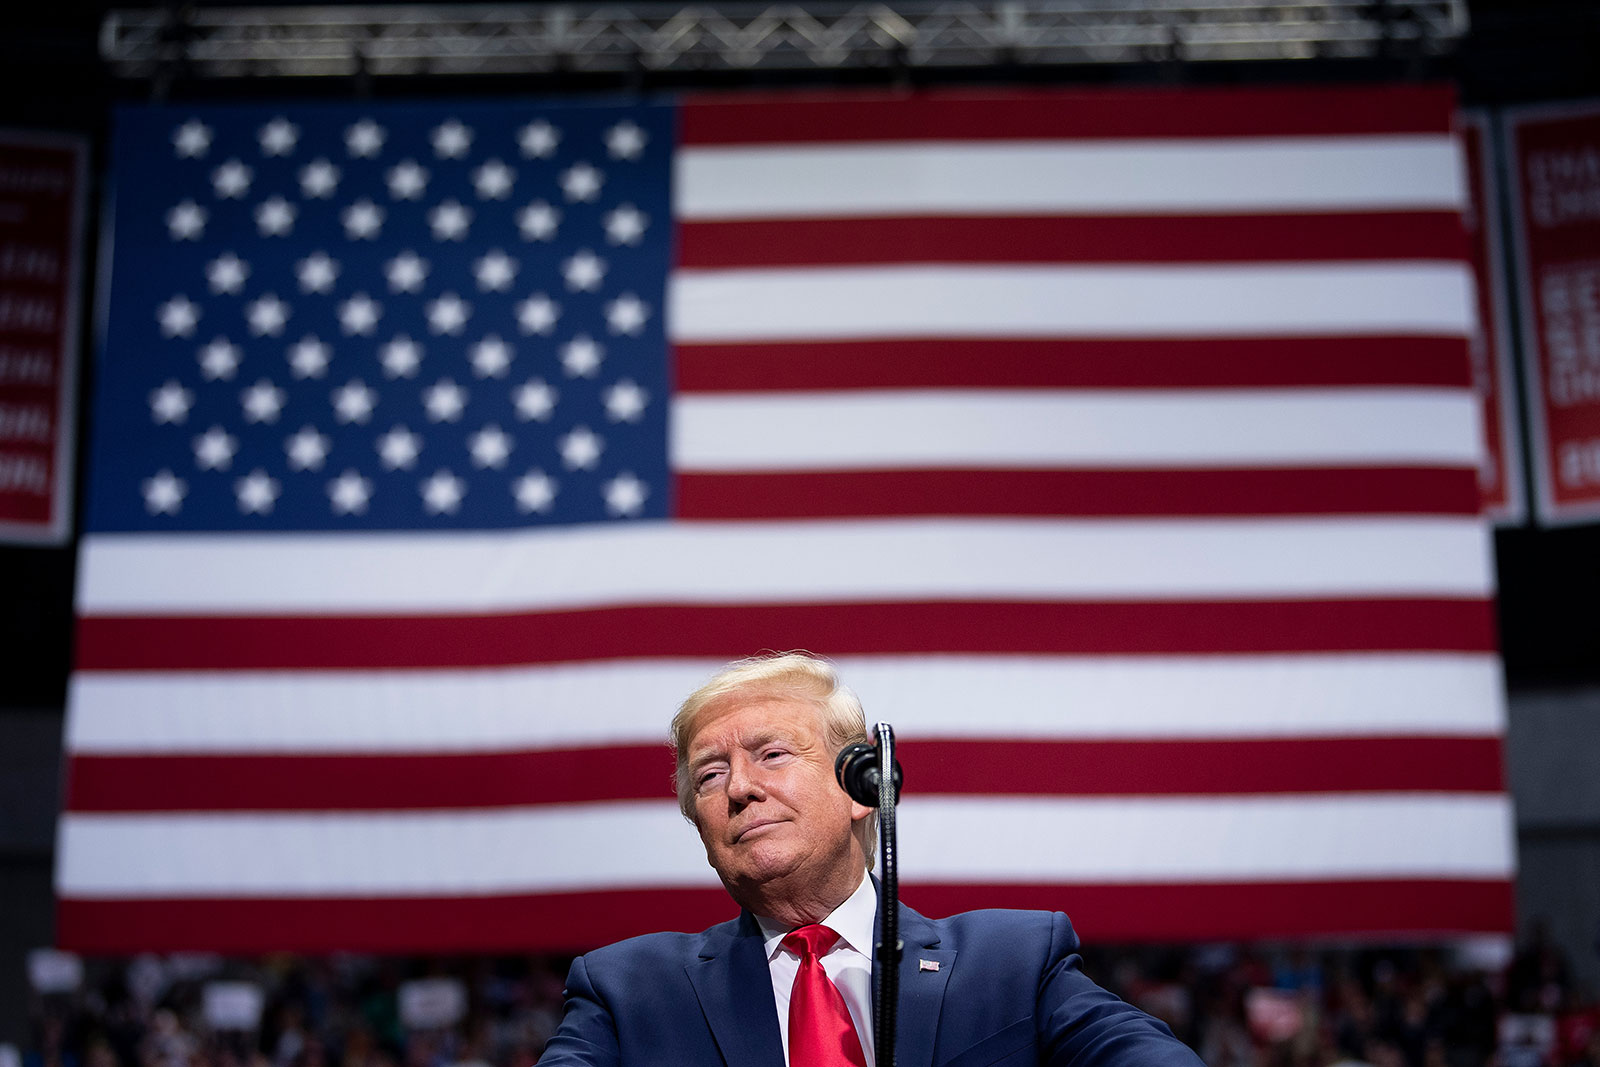 In this March 2, 2020 photo, US President Donald Trump speaks during a rally at Bojangles' Coliseum in Charlotte, North Carolina.